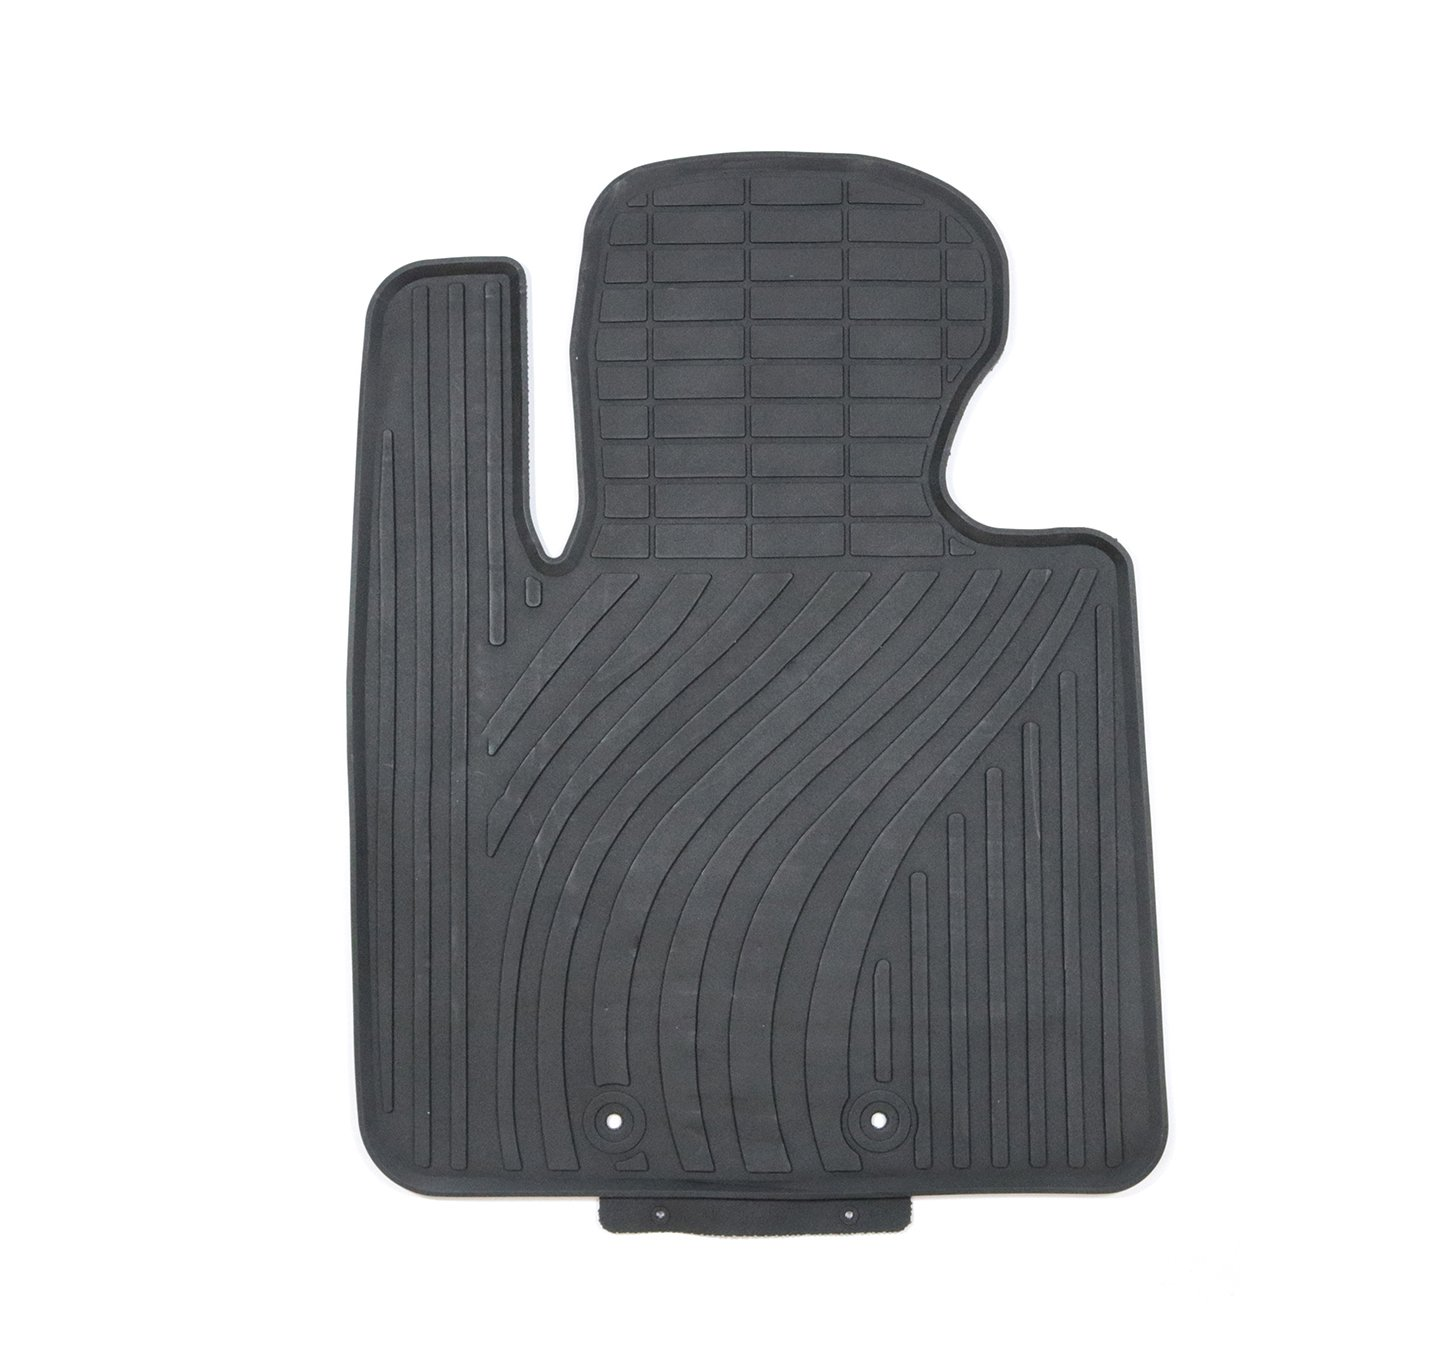 TMB Motorsports Black Rubber All Weather Floor Mats for 2010-2015 Kia Optima